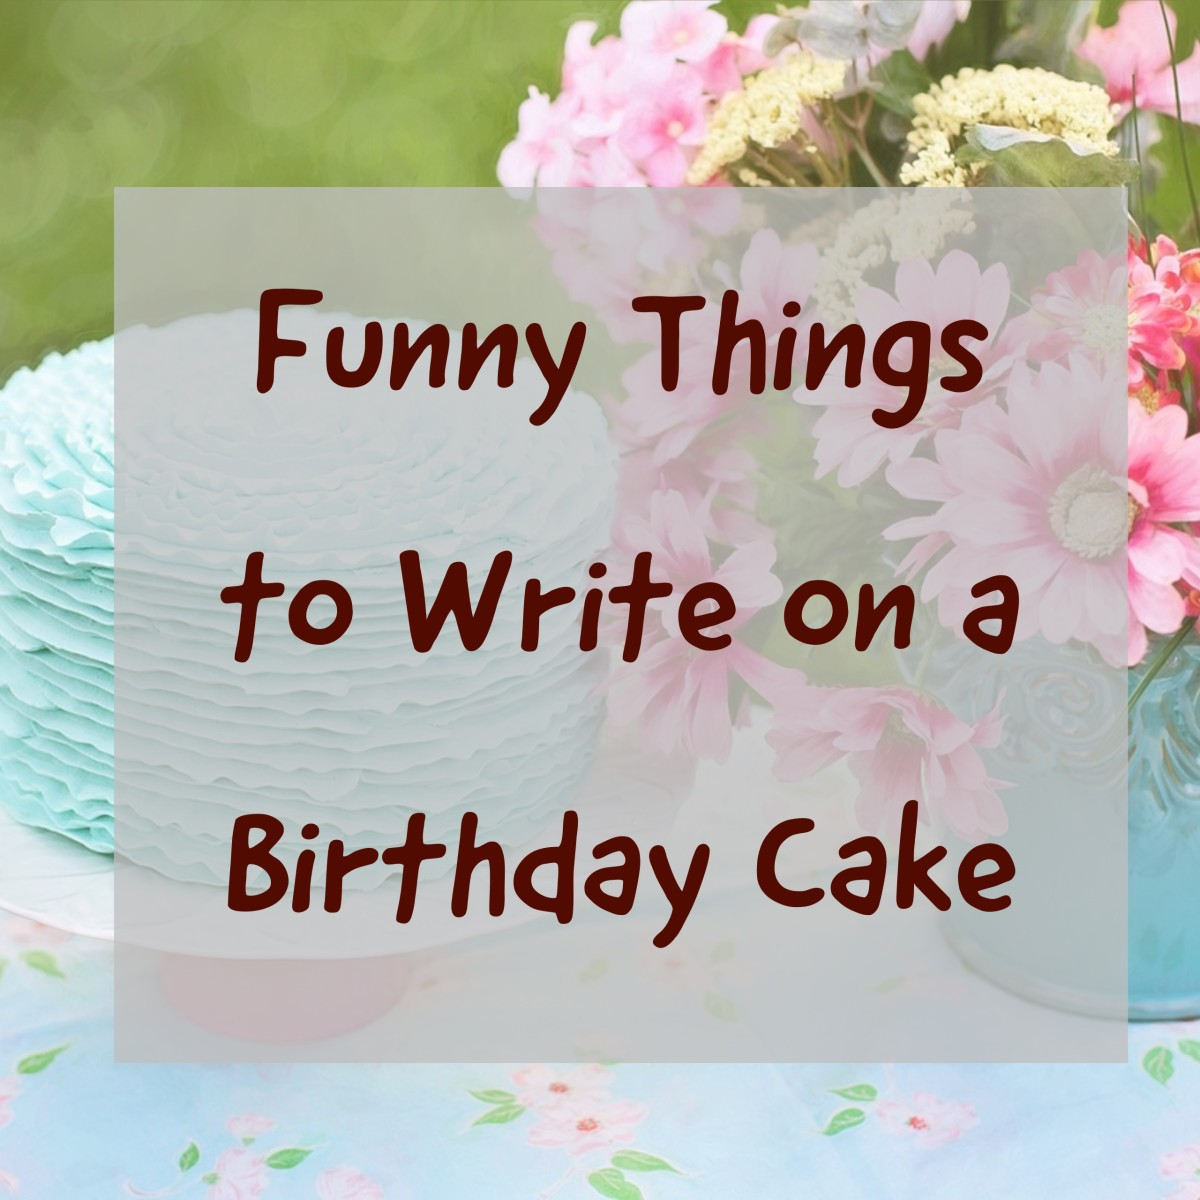 Funny Things You Can Write on a Birthday Cake